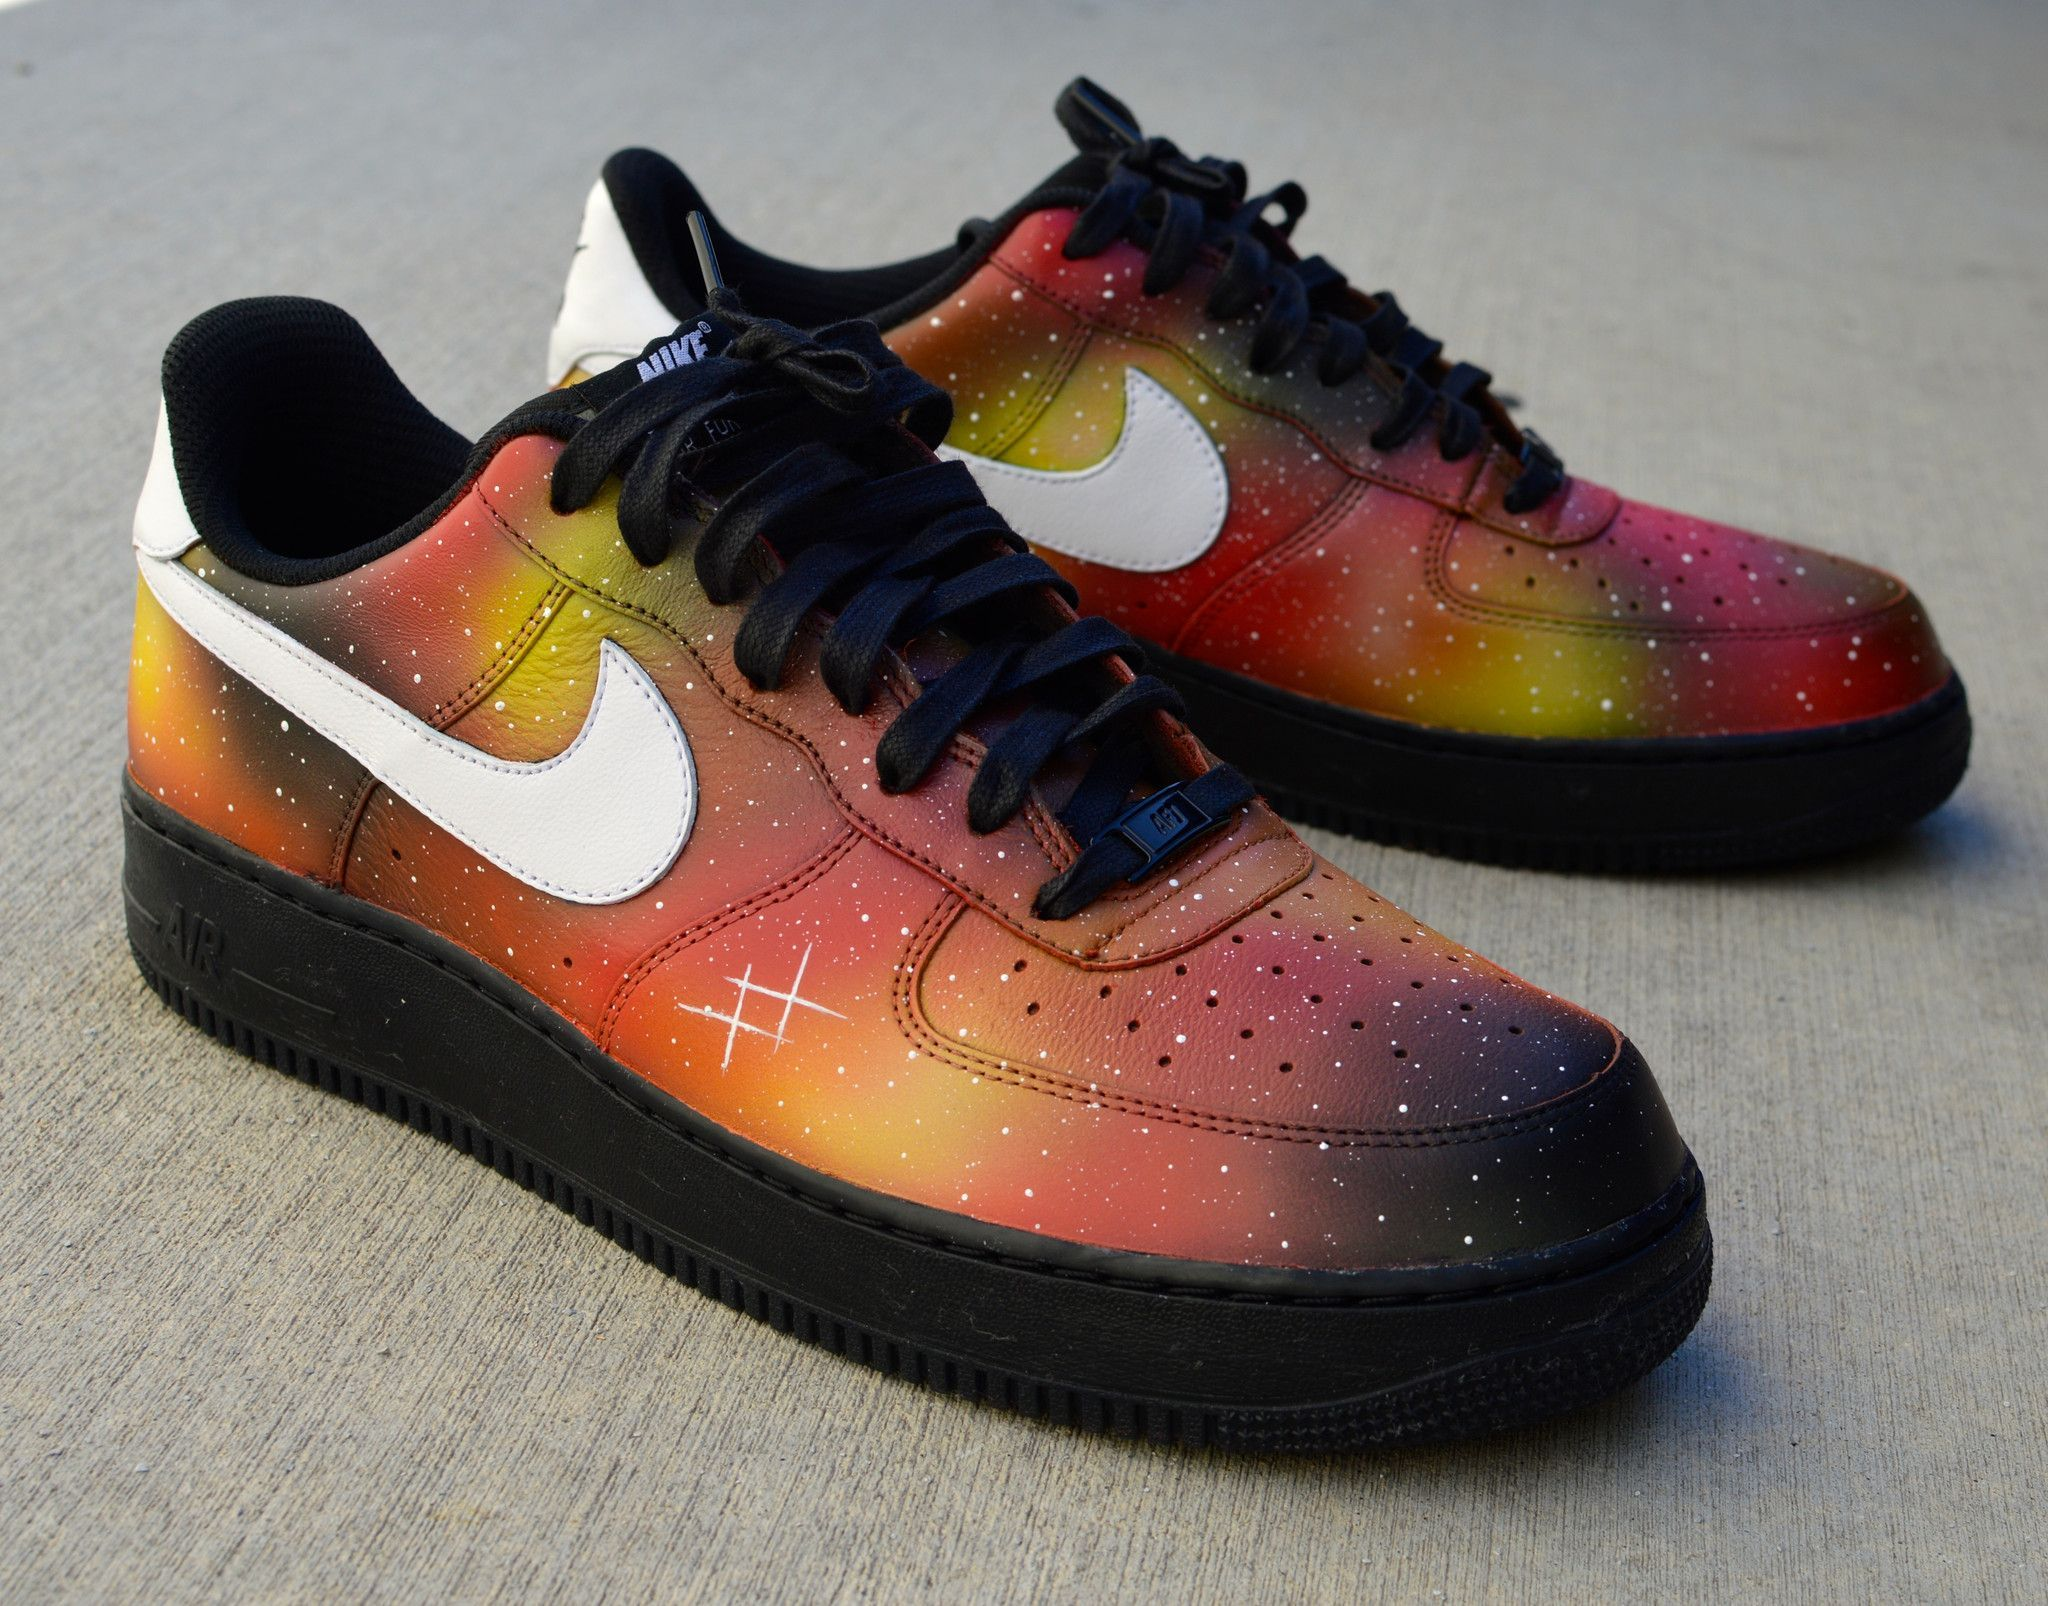 These one of a kind hand painted Air Force Ones Low Sneakers